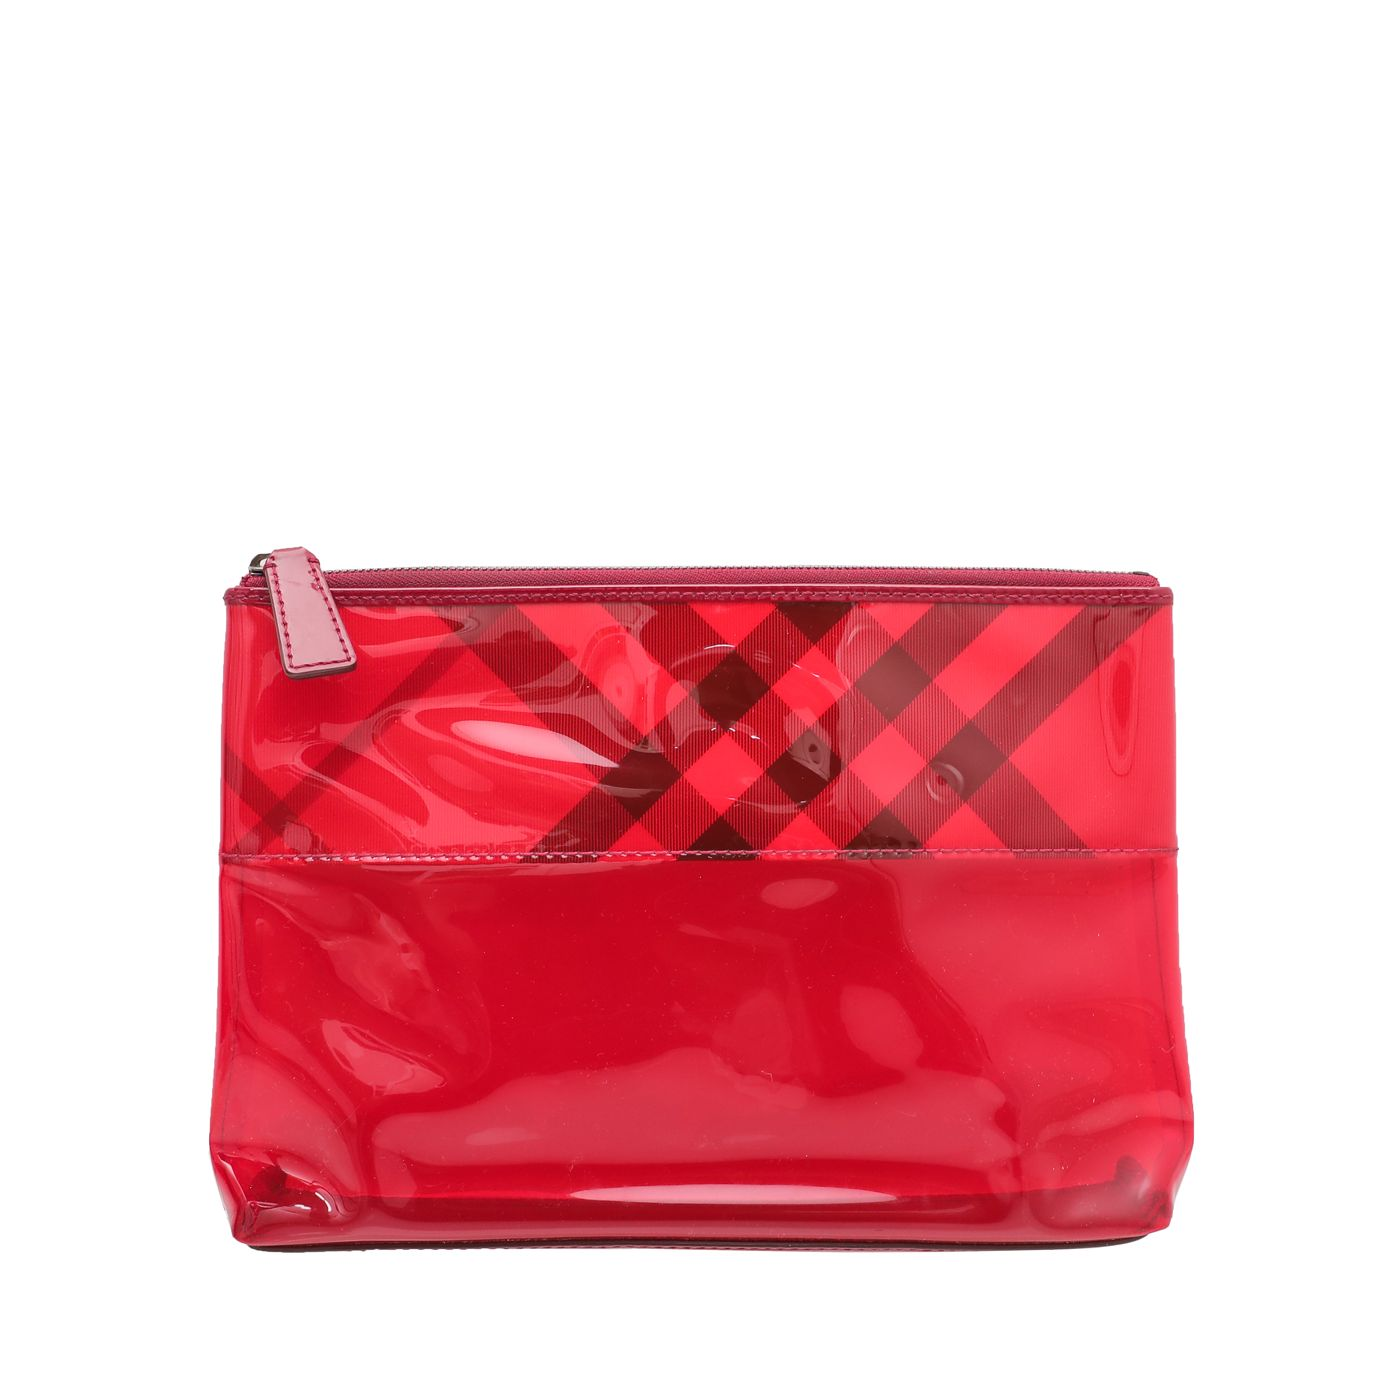 Burberry Red Novacheck Transparent Cosmetic Pouch